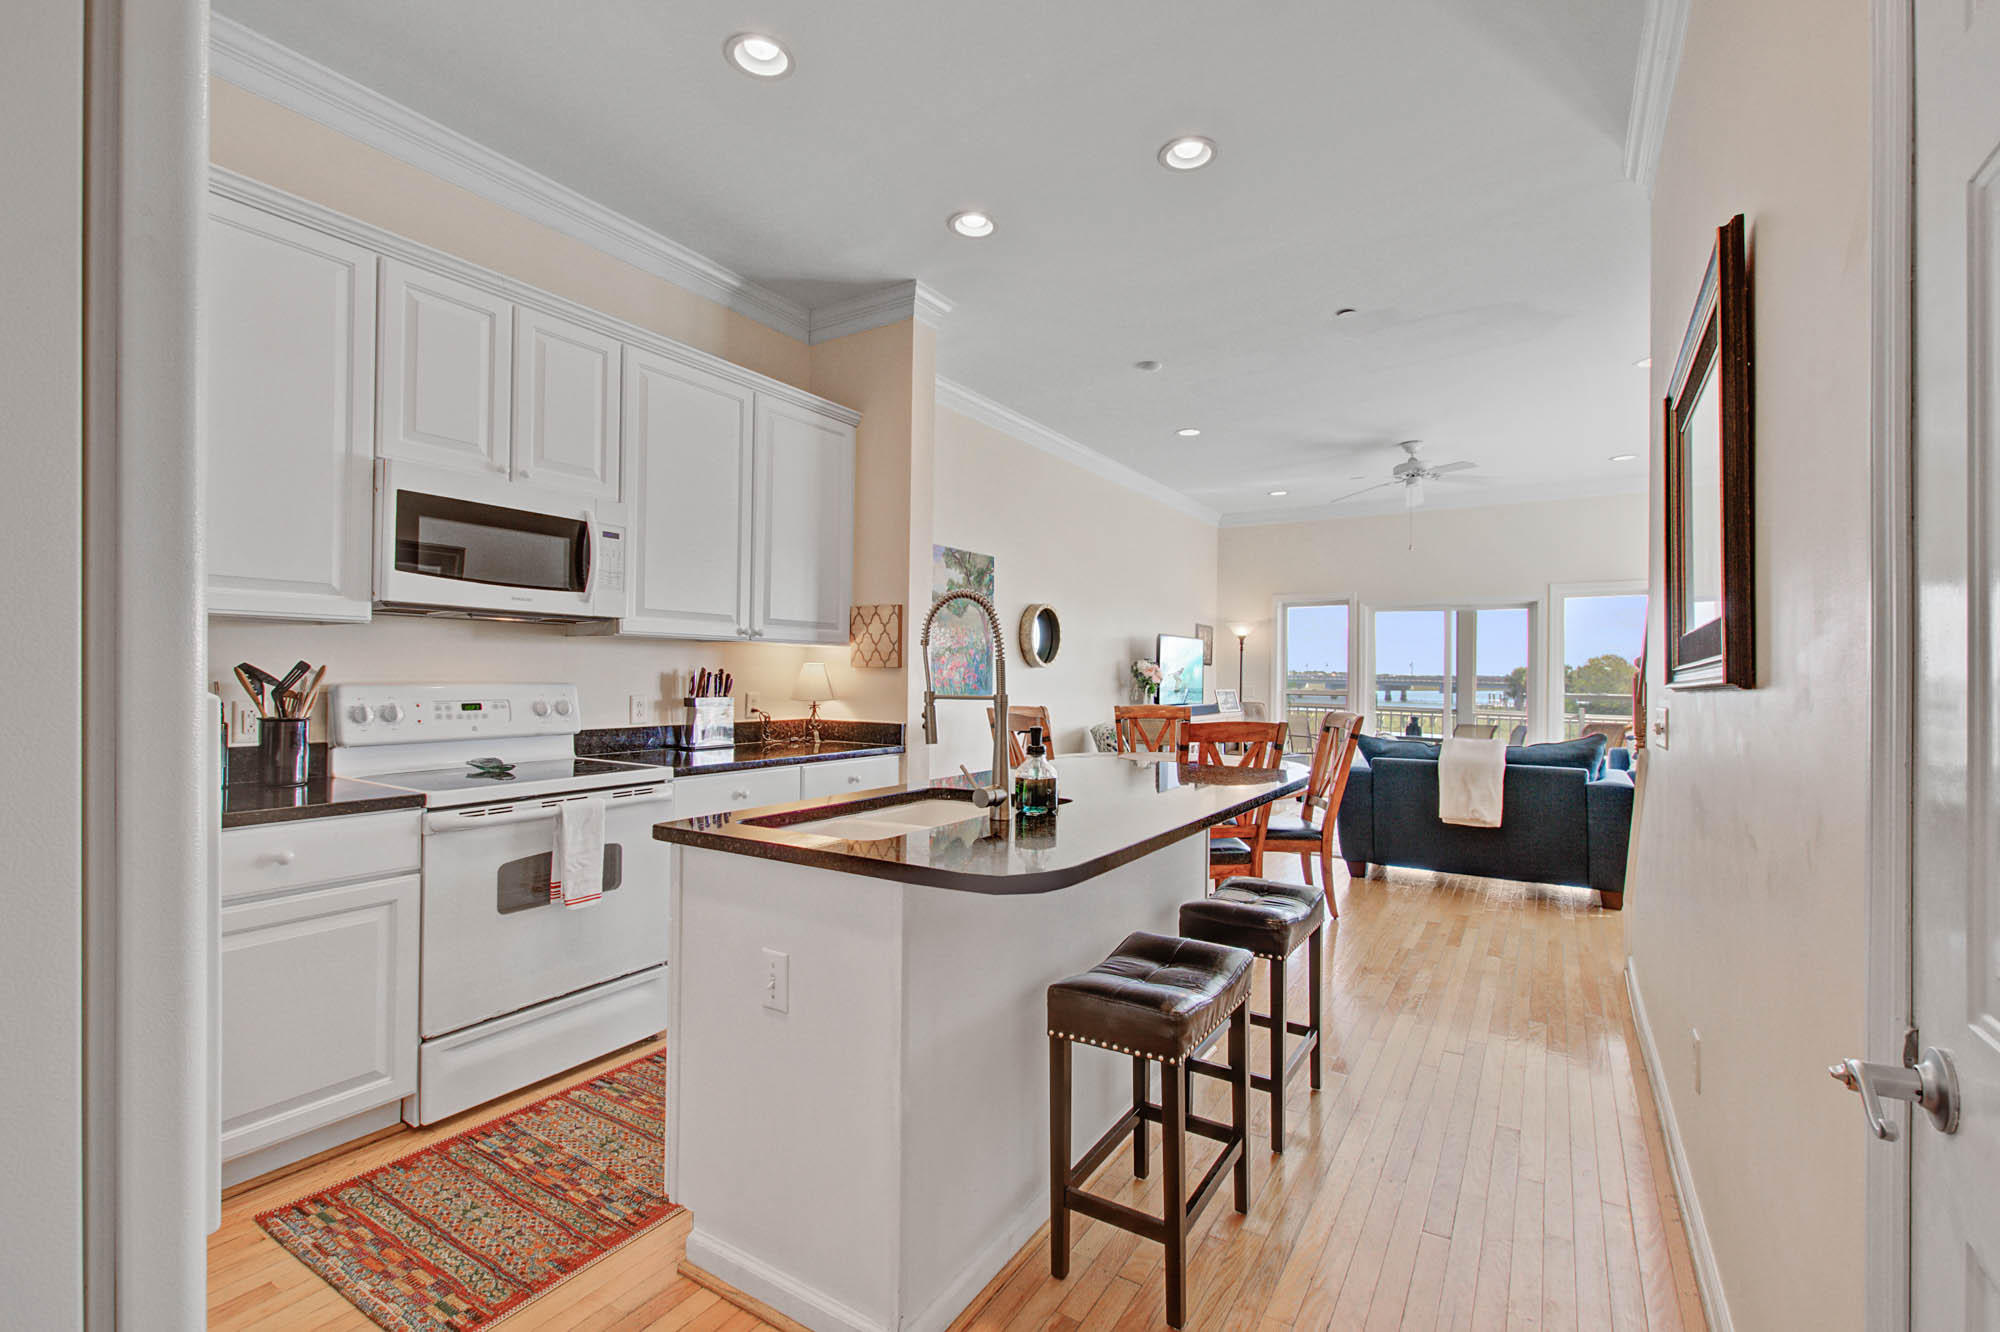 Waters Edge Homes For Sale - 104 2nd, Folly Beach, SC - 34